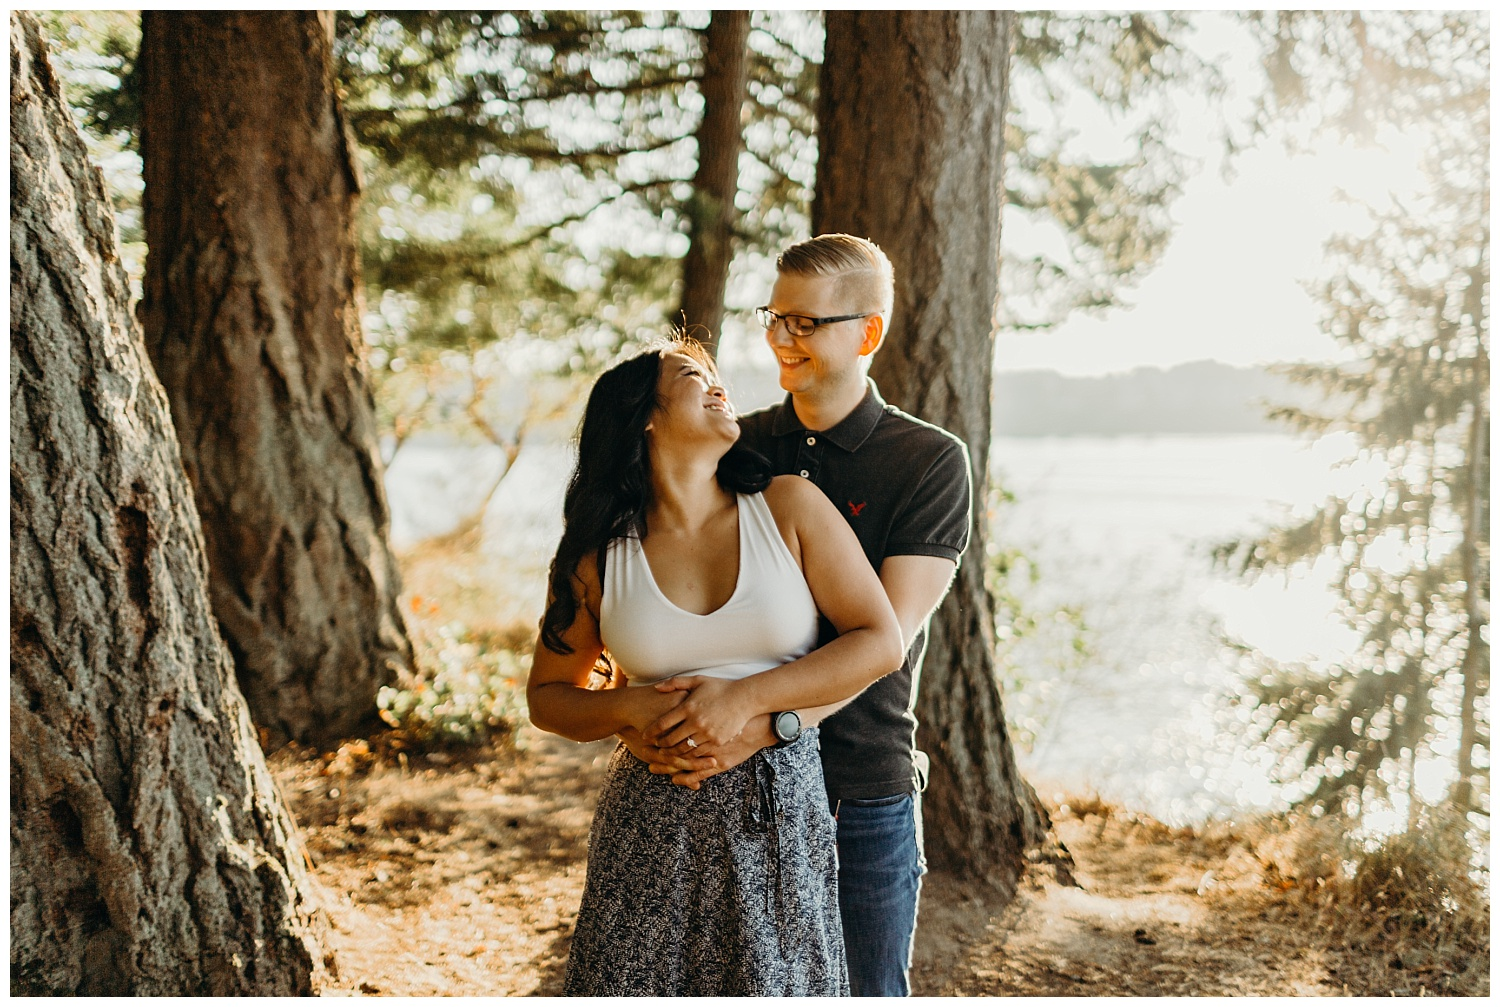 Jaynah and Kevin Point Defiance Rose Garden Owen Beach Tacoma Washington Engagement Session (52).jpg